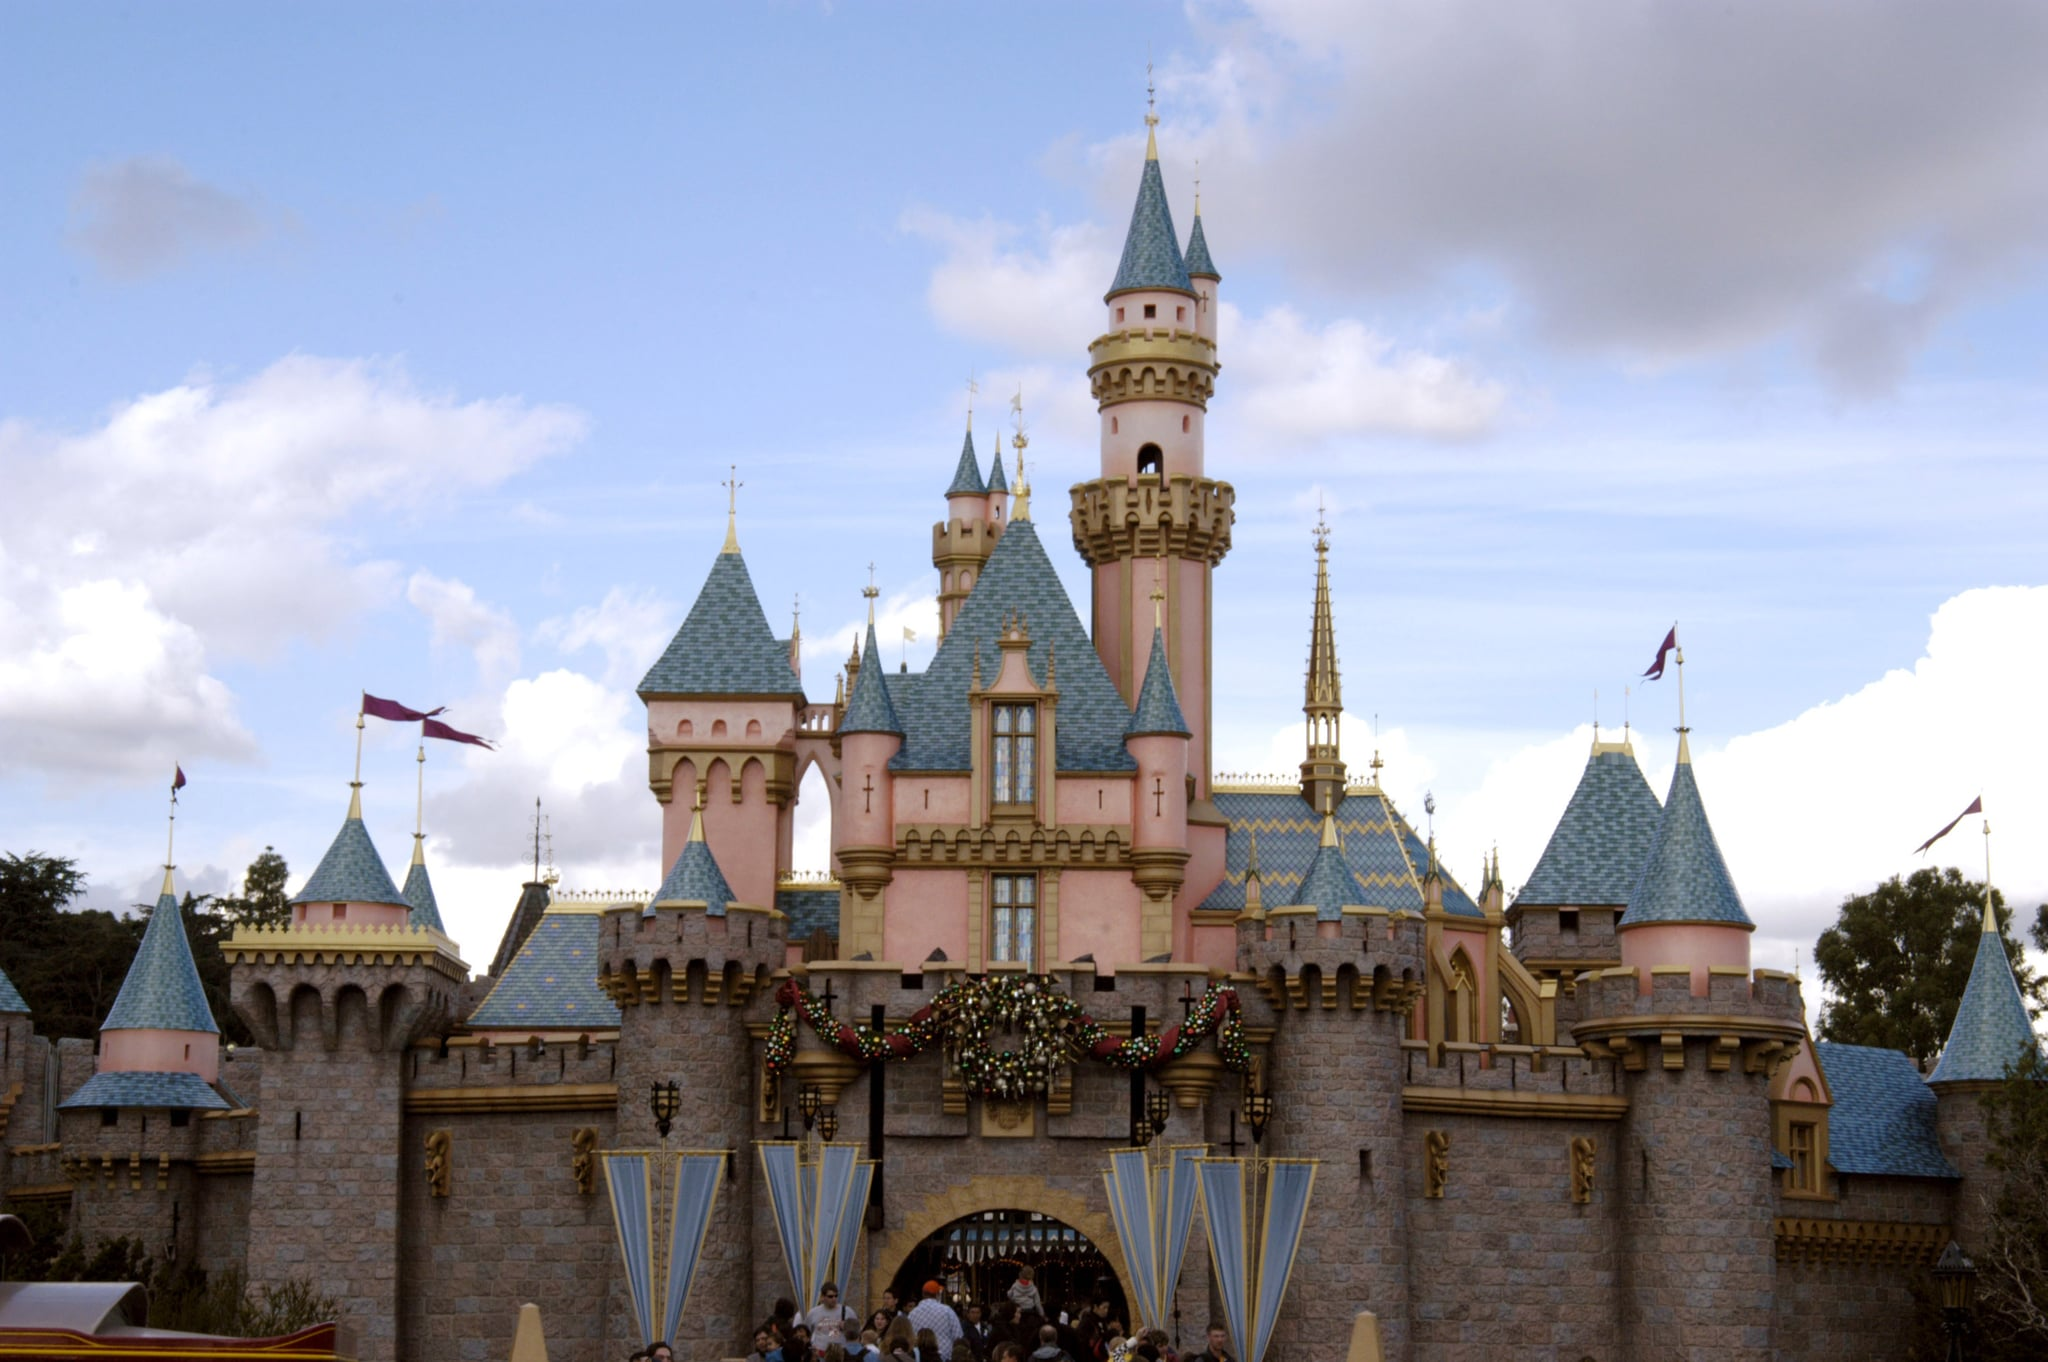 Cinderella's Castle at Disneyland Resort (Photo by Barry King/WireImage)